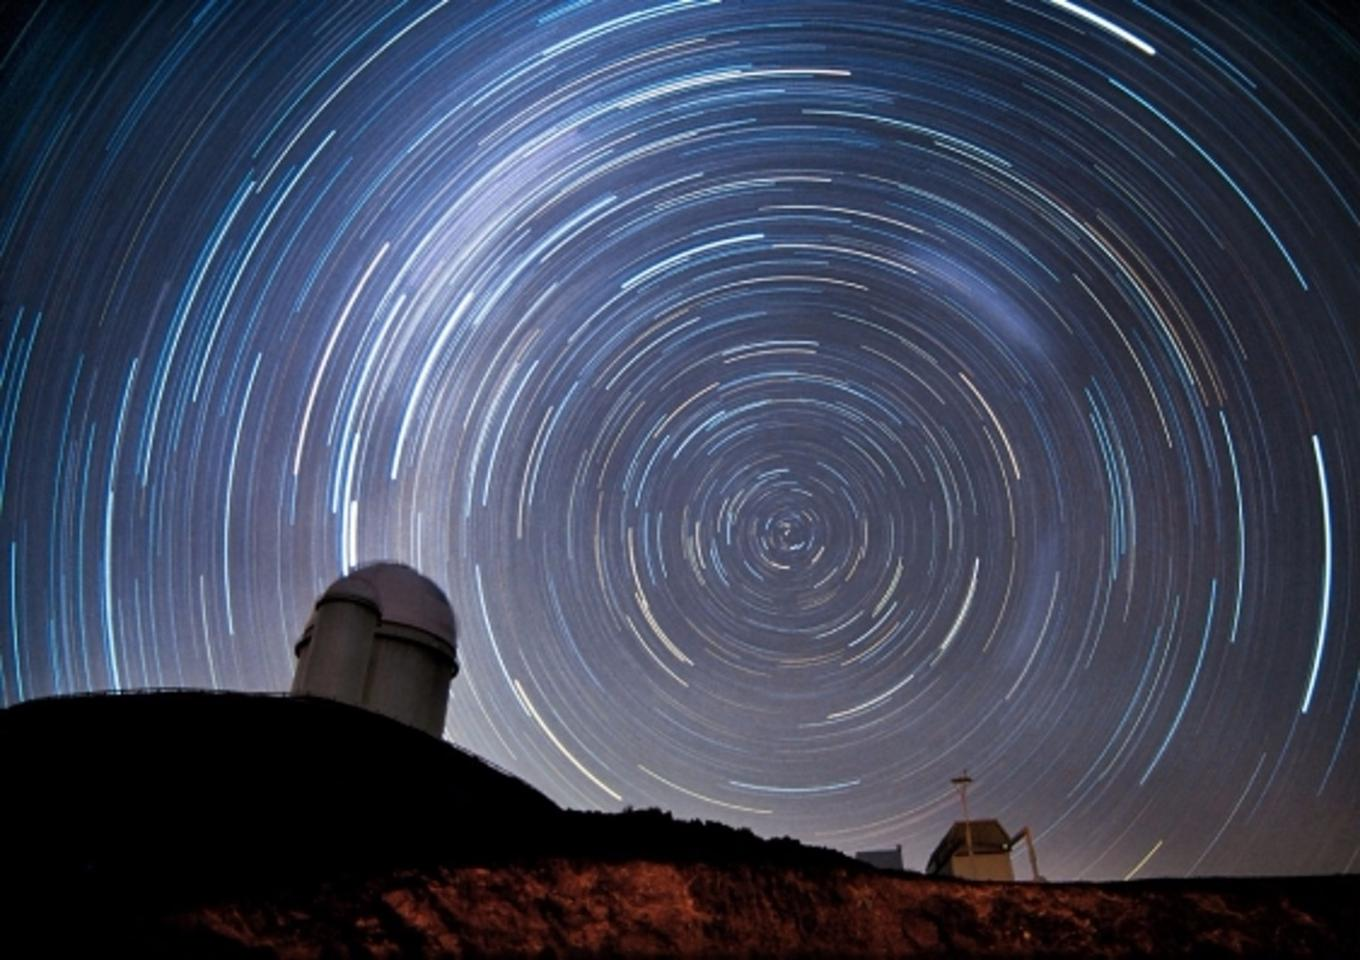 ESO's La Silla Observatory in northern Chile